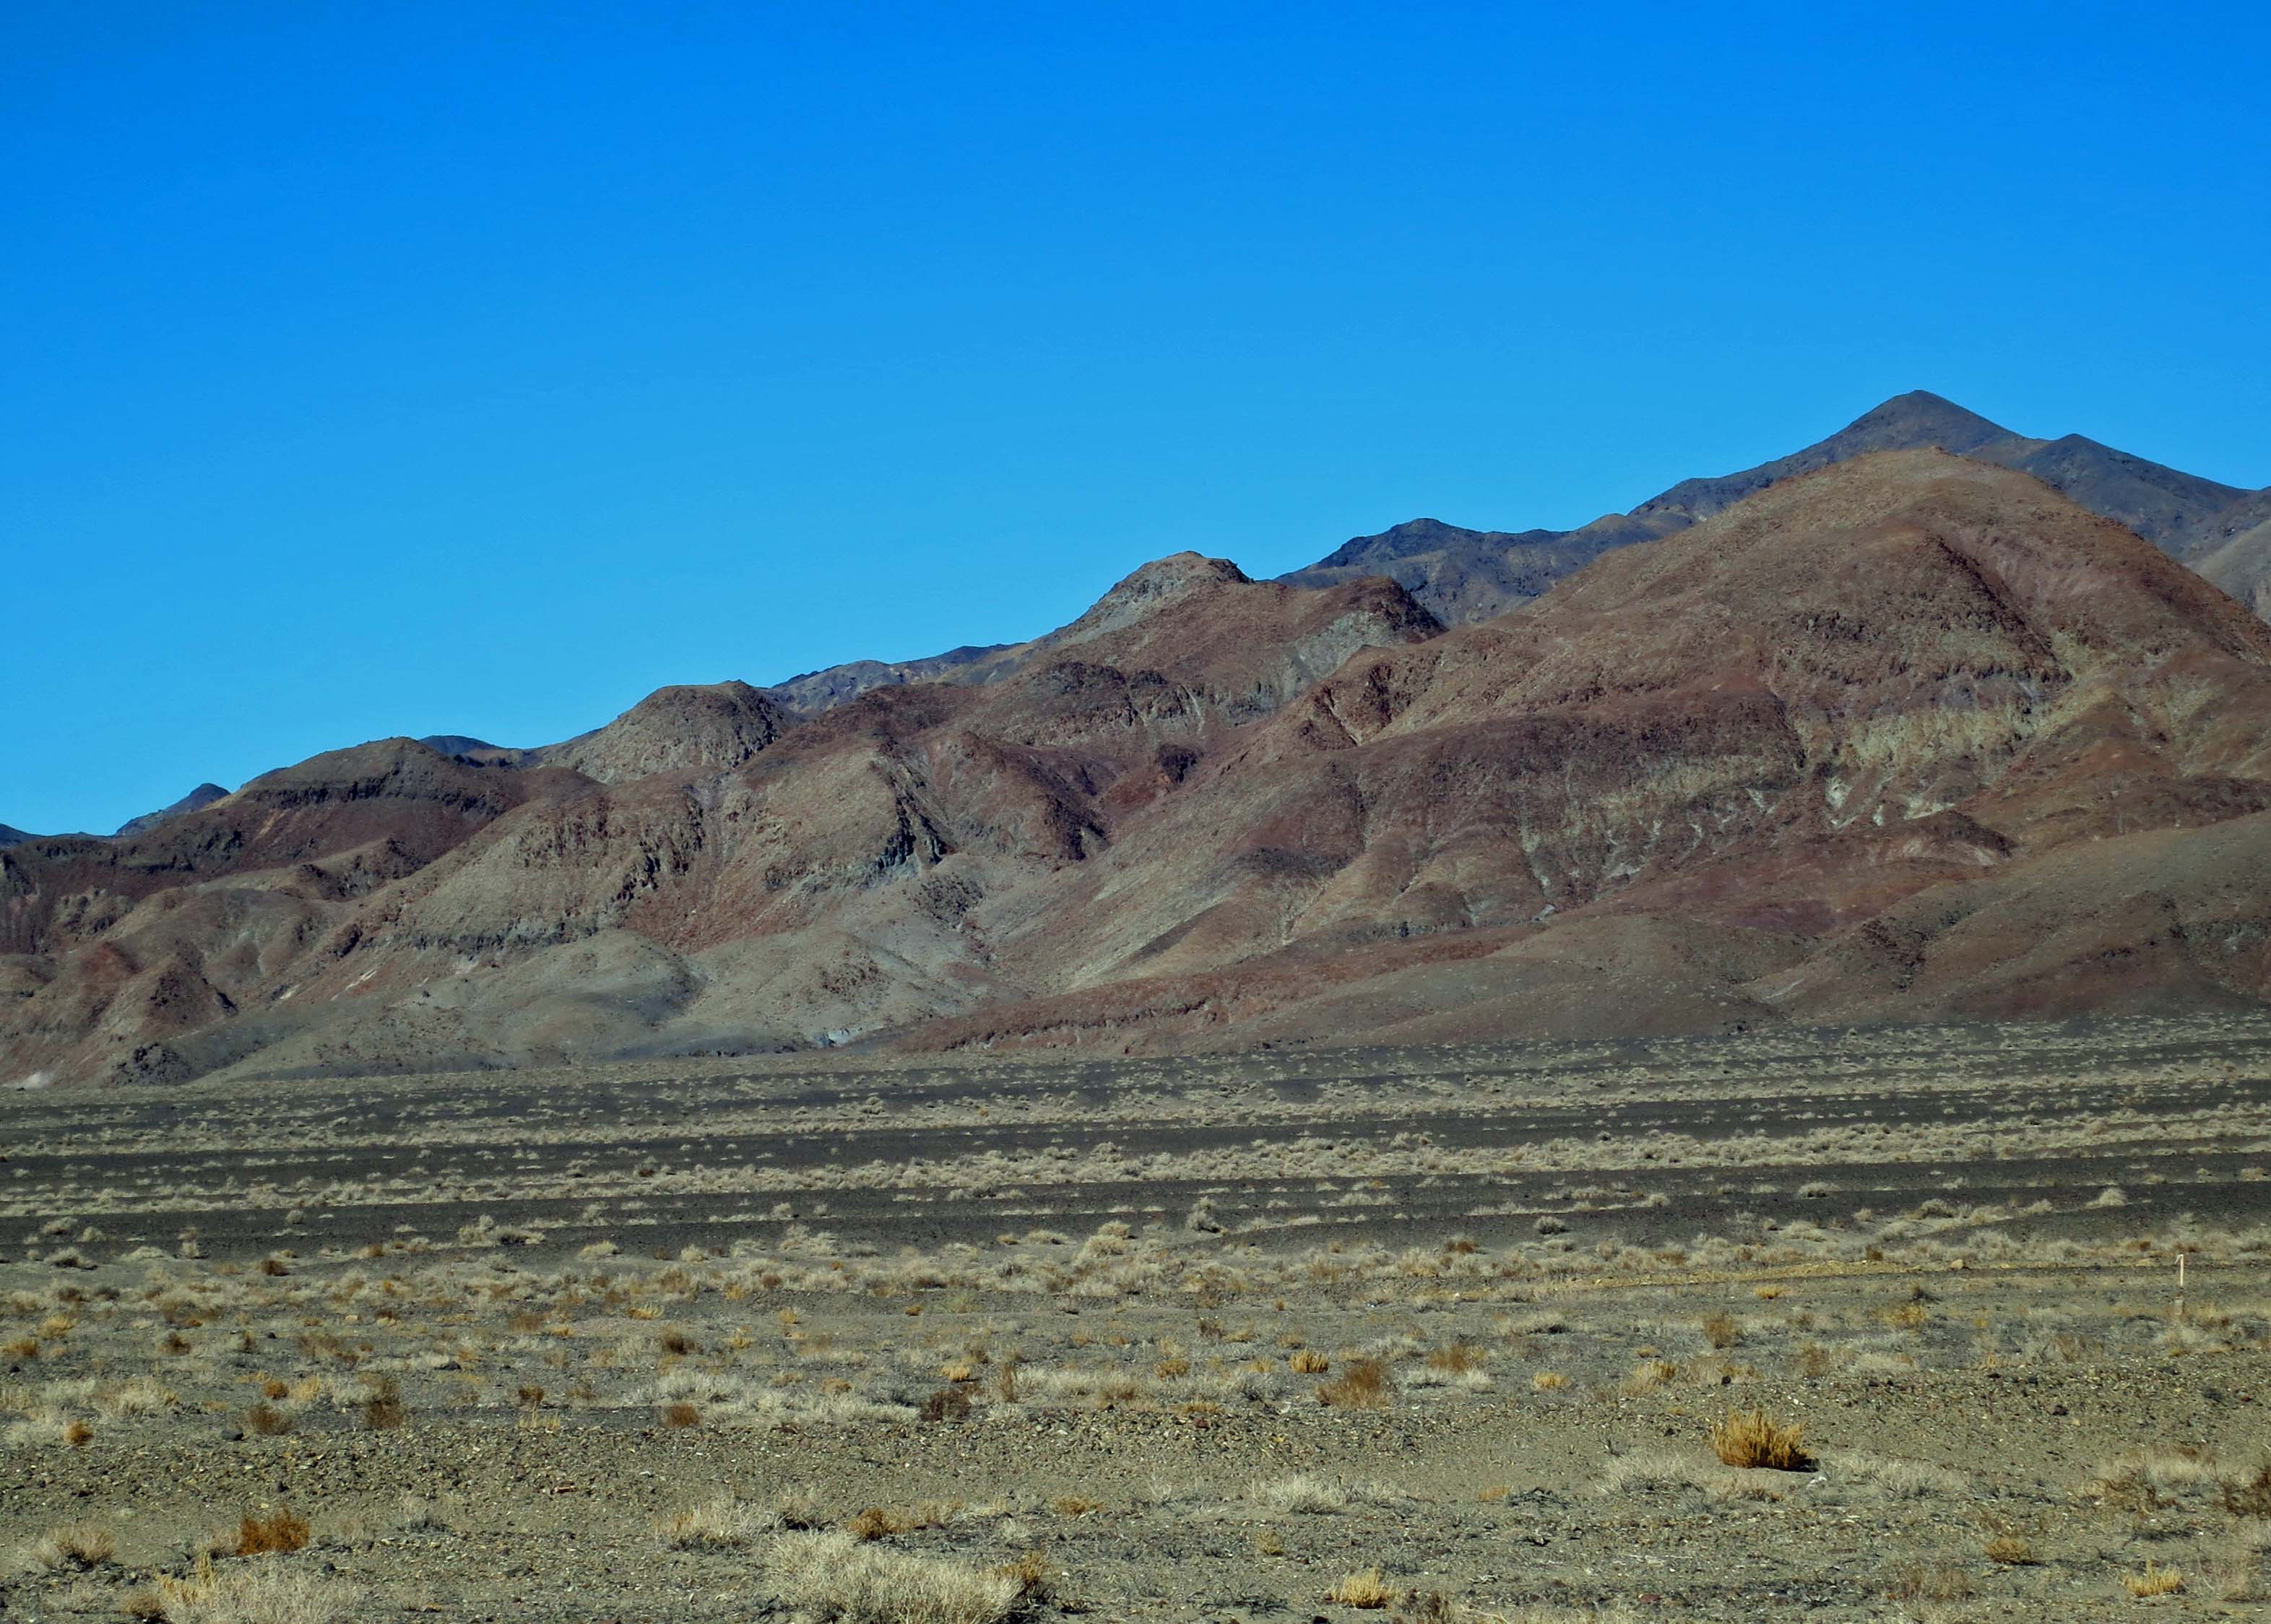 What Las Vegas would look like without water.